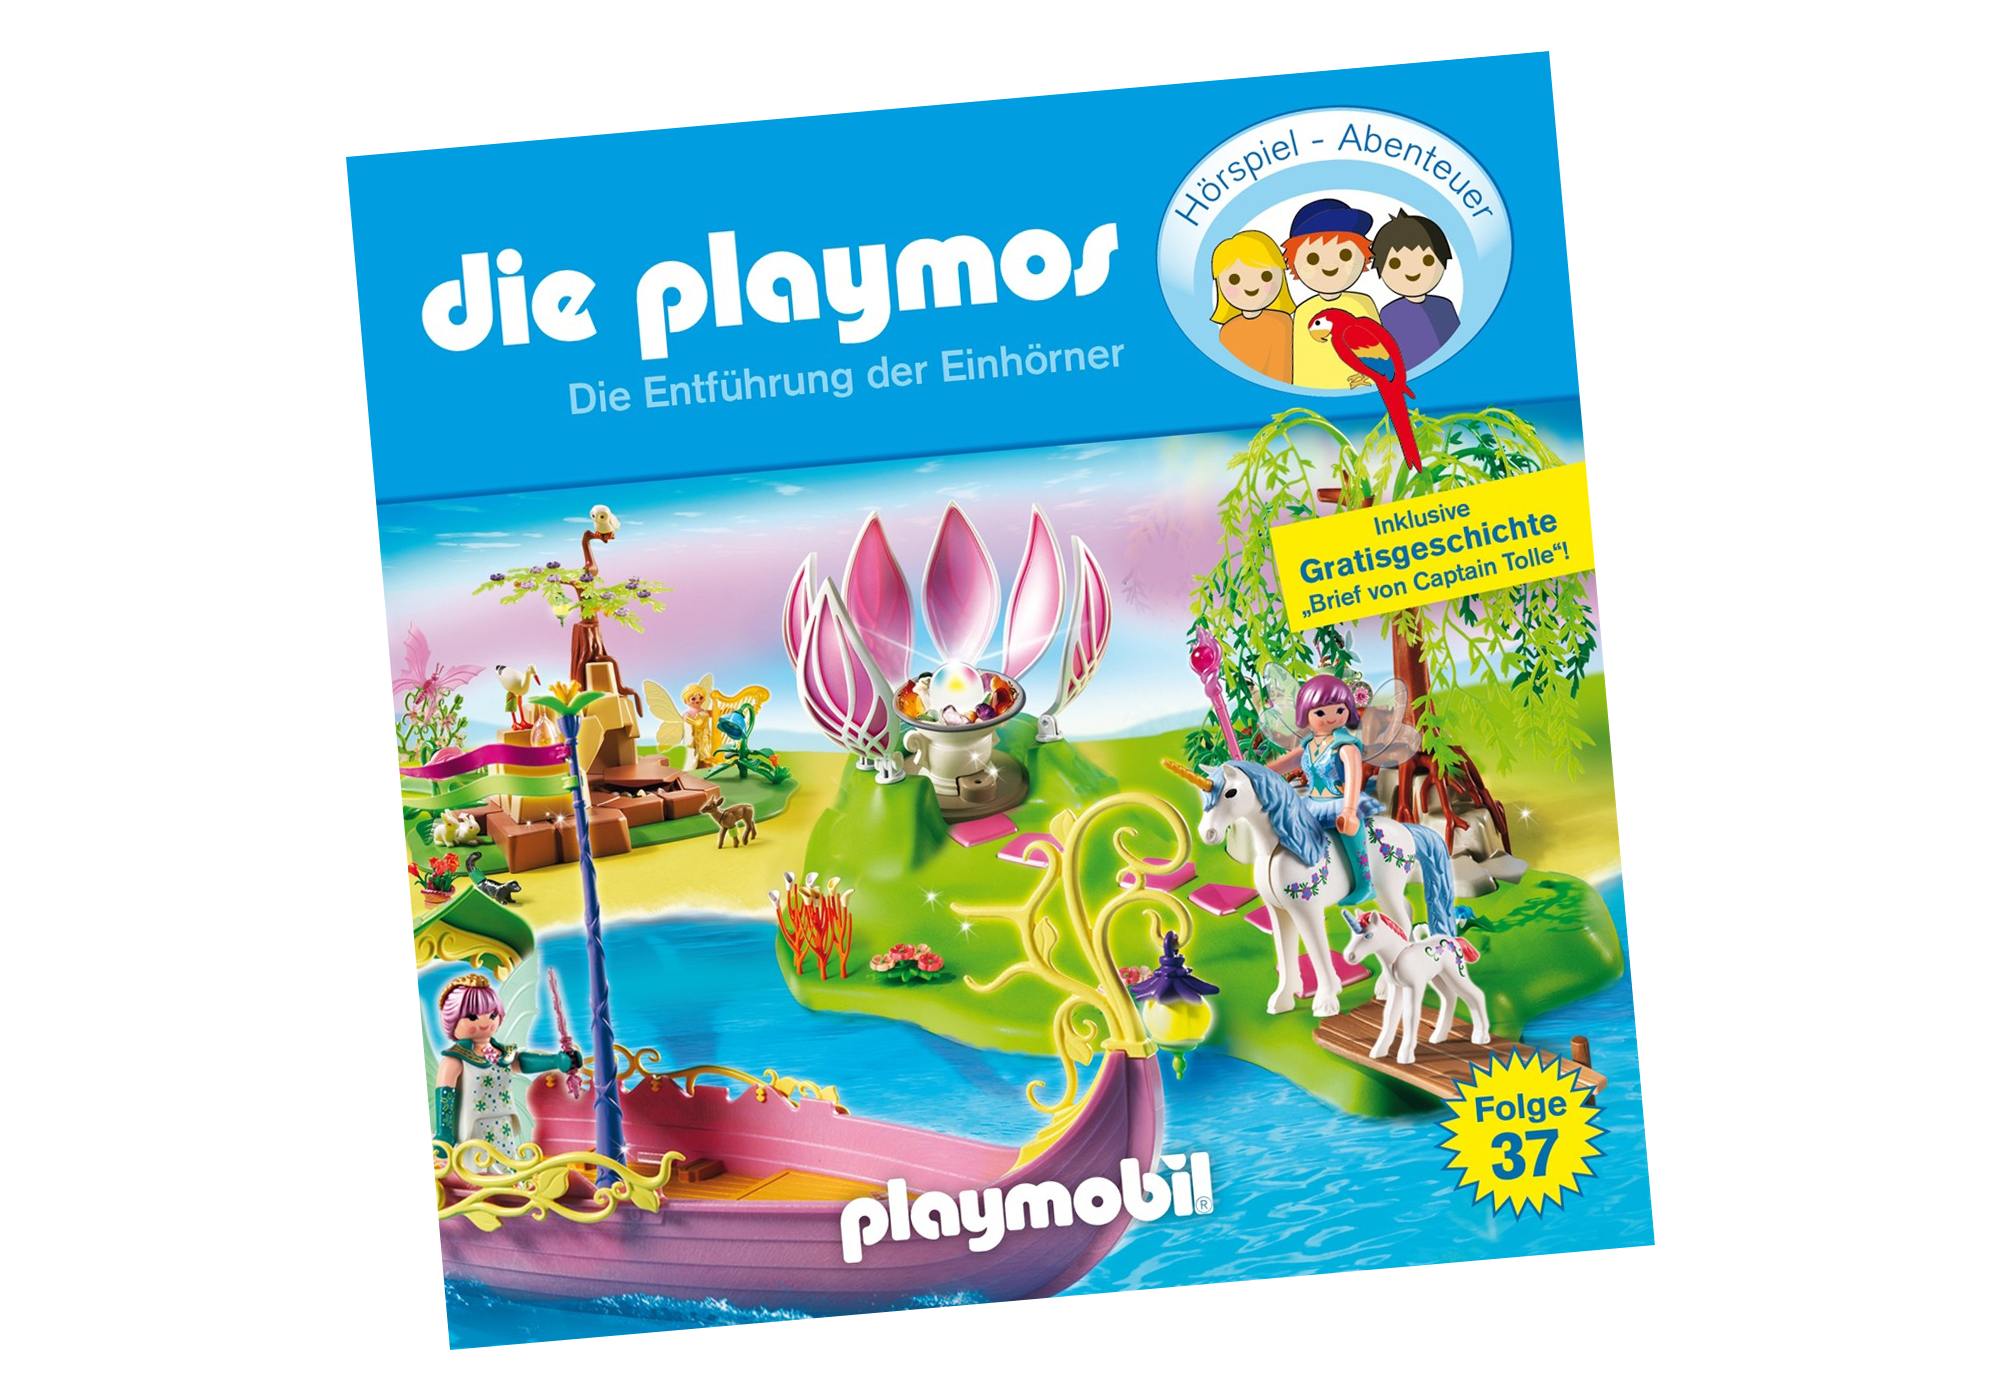 http://media.playmobil.com/i/playmobil/80450_product_detail